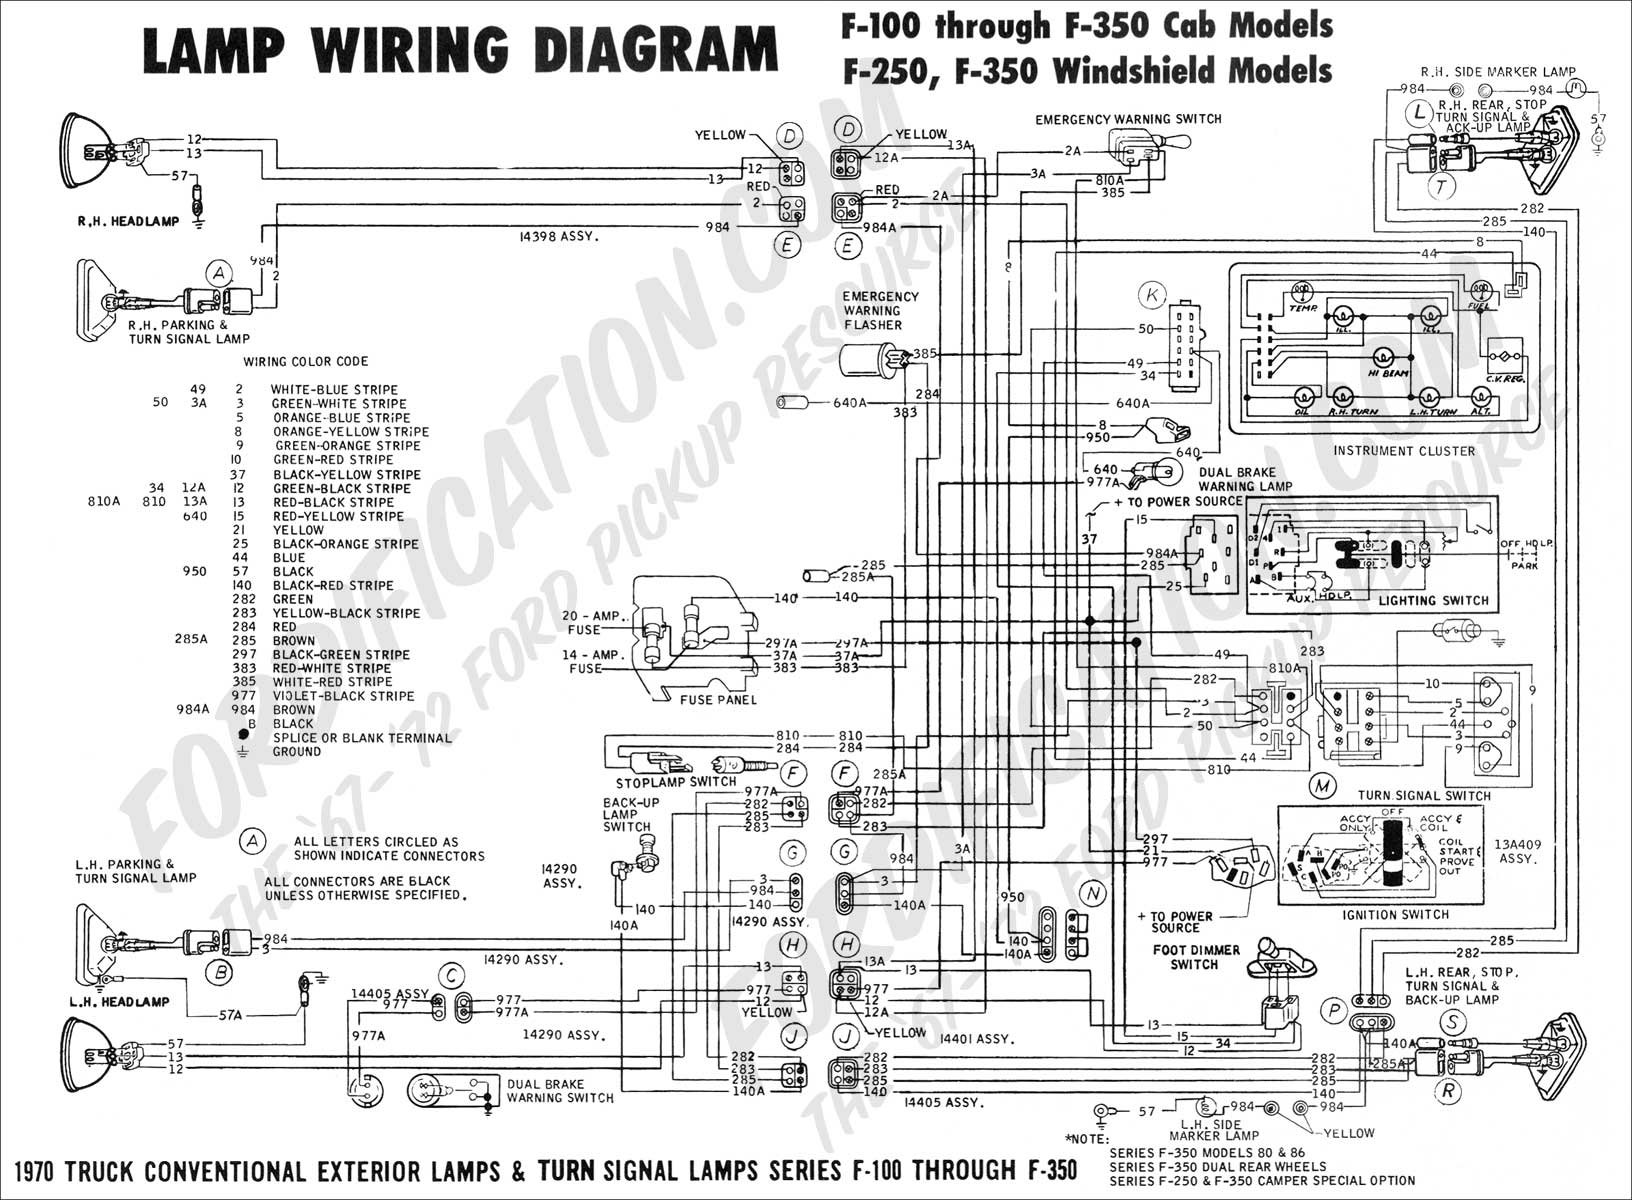 99 Ford F350 Trailer Wiring Diagram | Wiring Diagram - 1996 Ford F350 Trailer Wiring Diagram